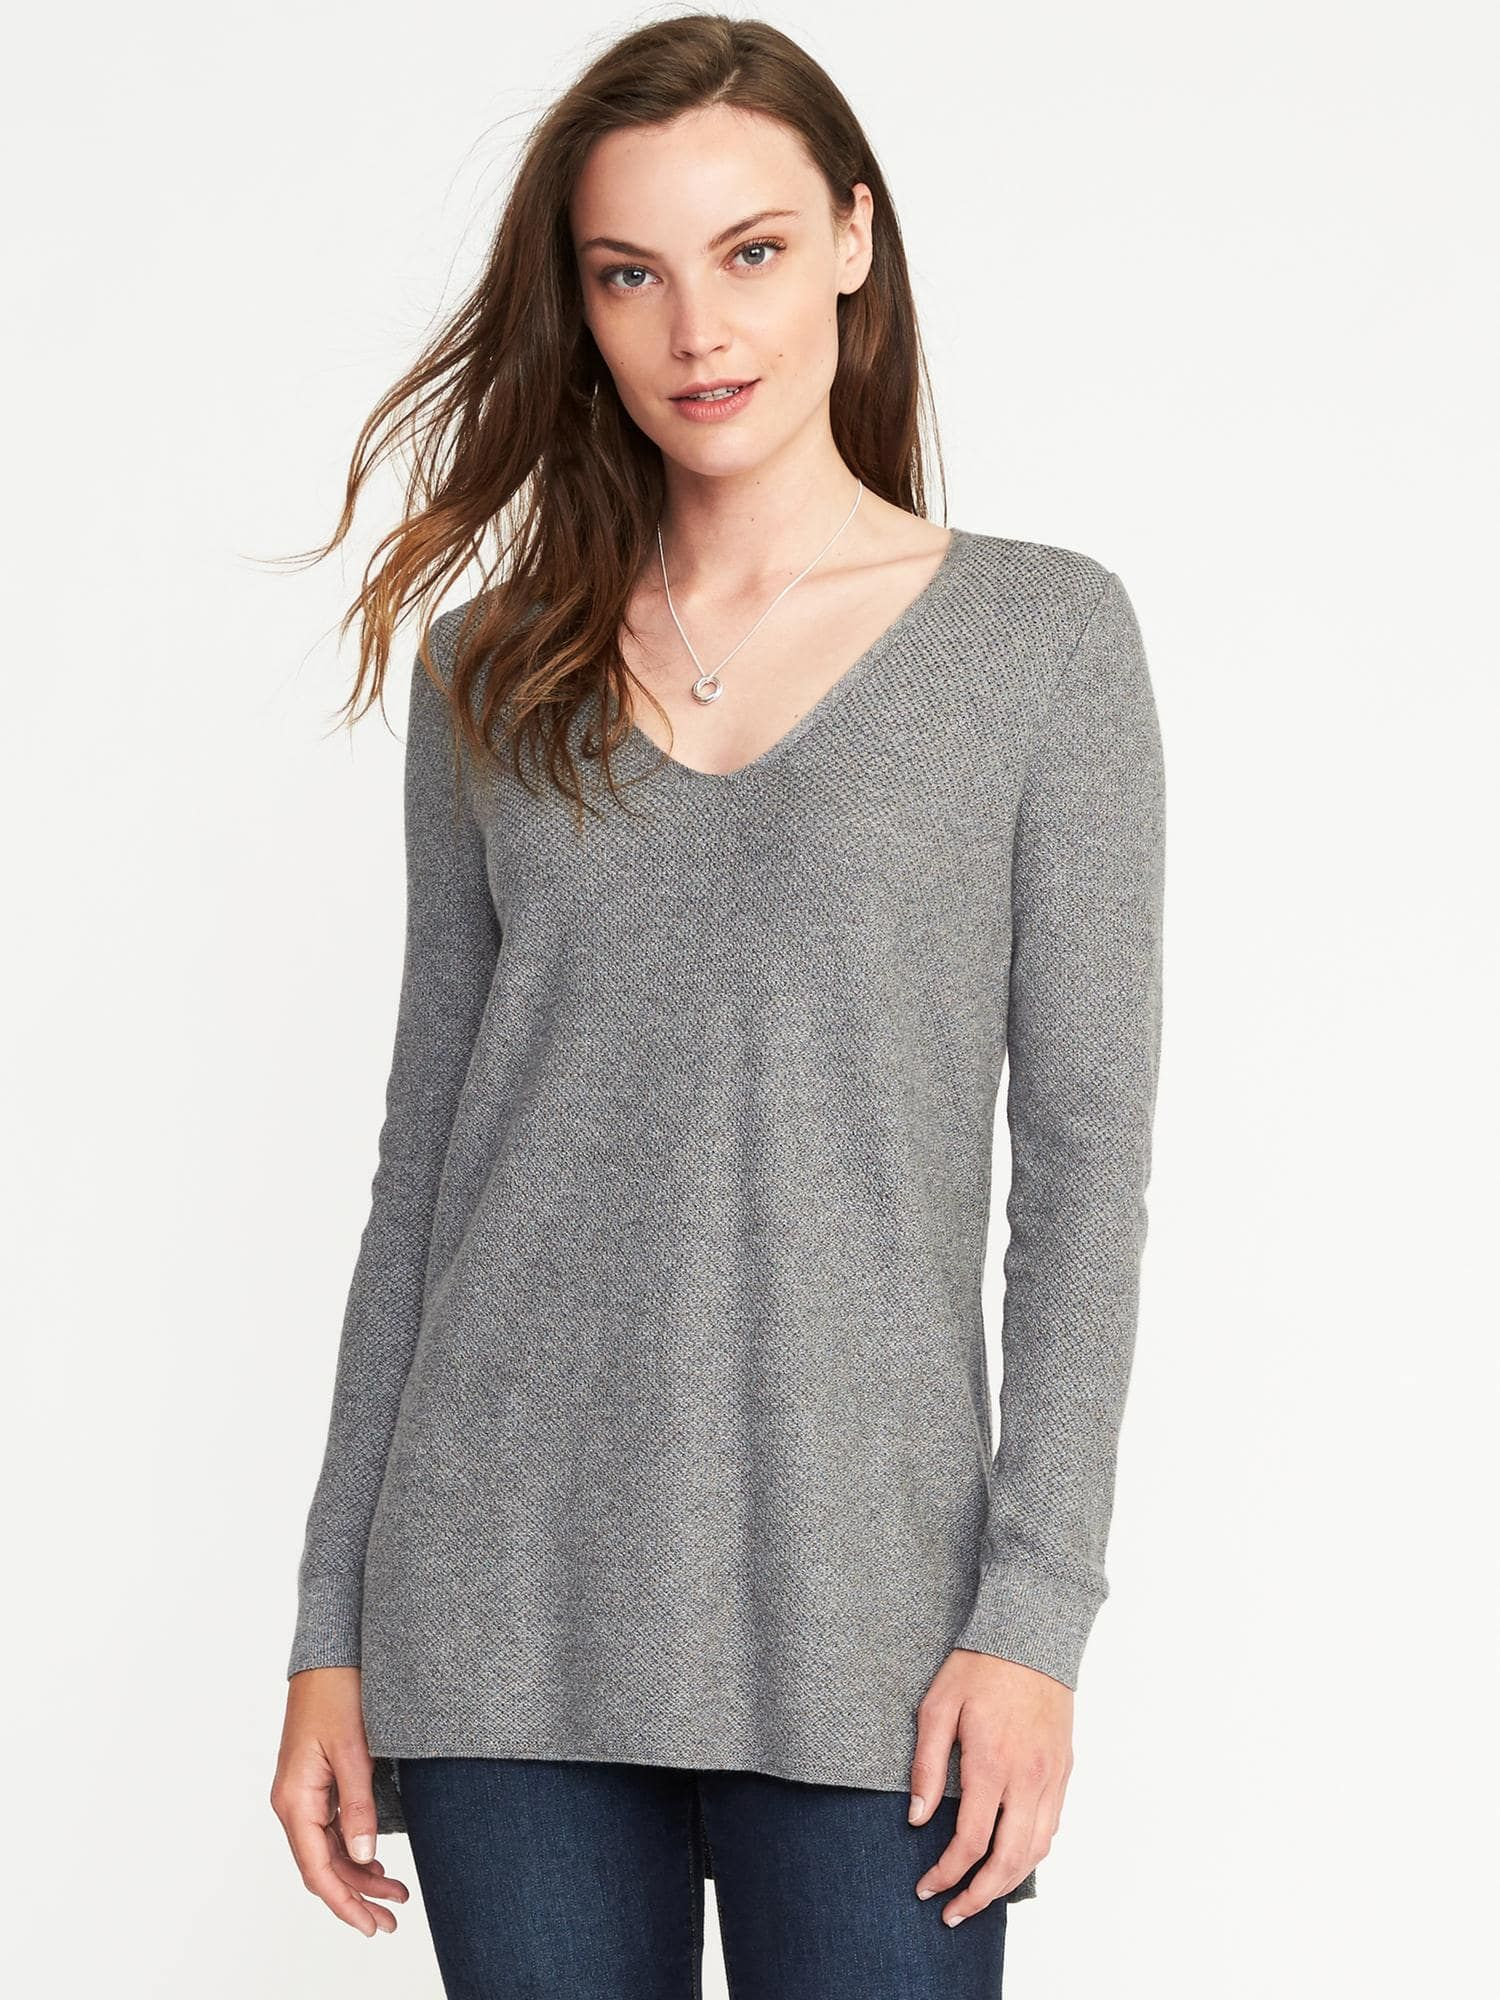 Relaxed Textured V Neck Sweater for Women   Old Navy